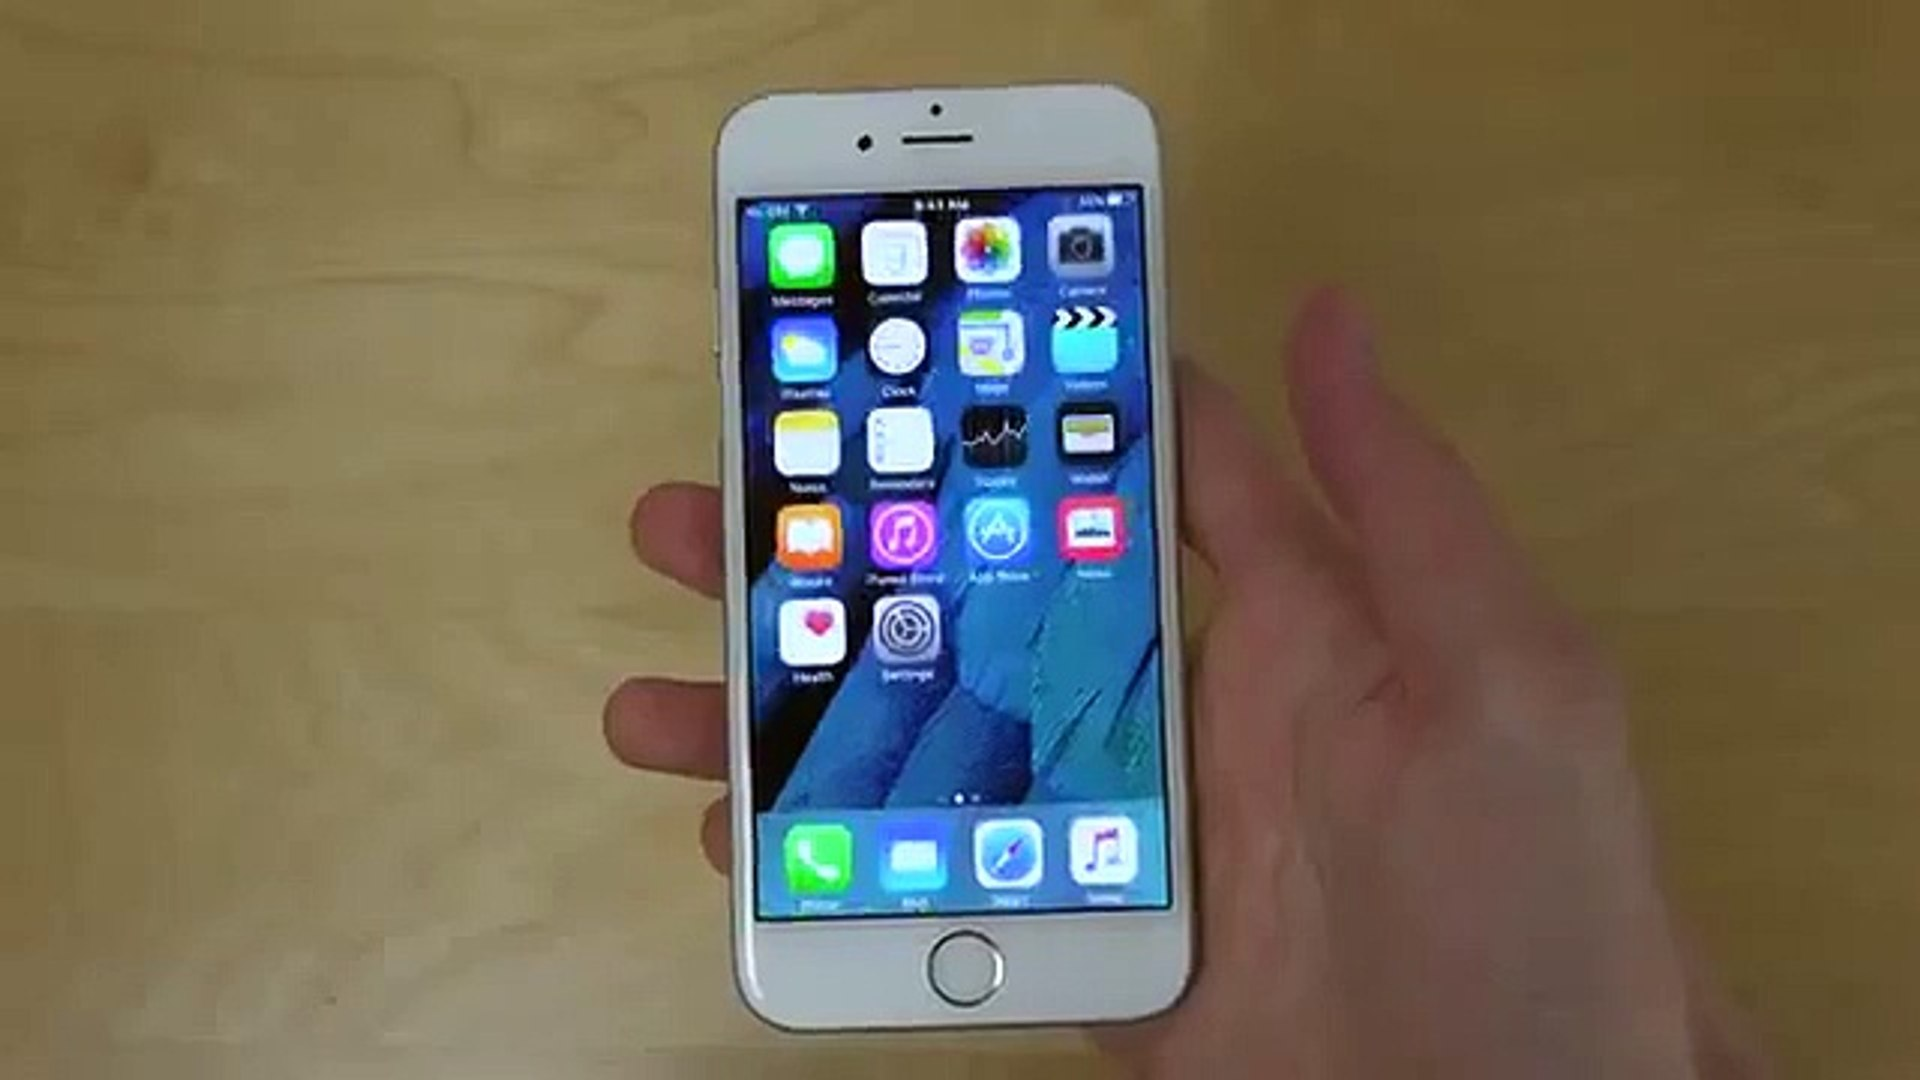 iPhone 6 iOS 9 Beta 5 New Wallpapers First Look! - video dailymotion